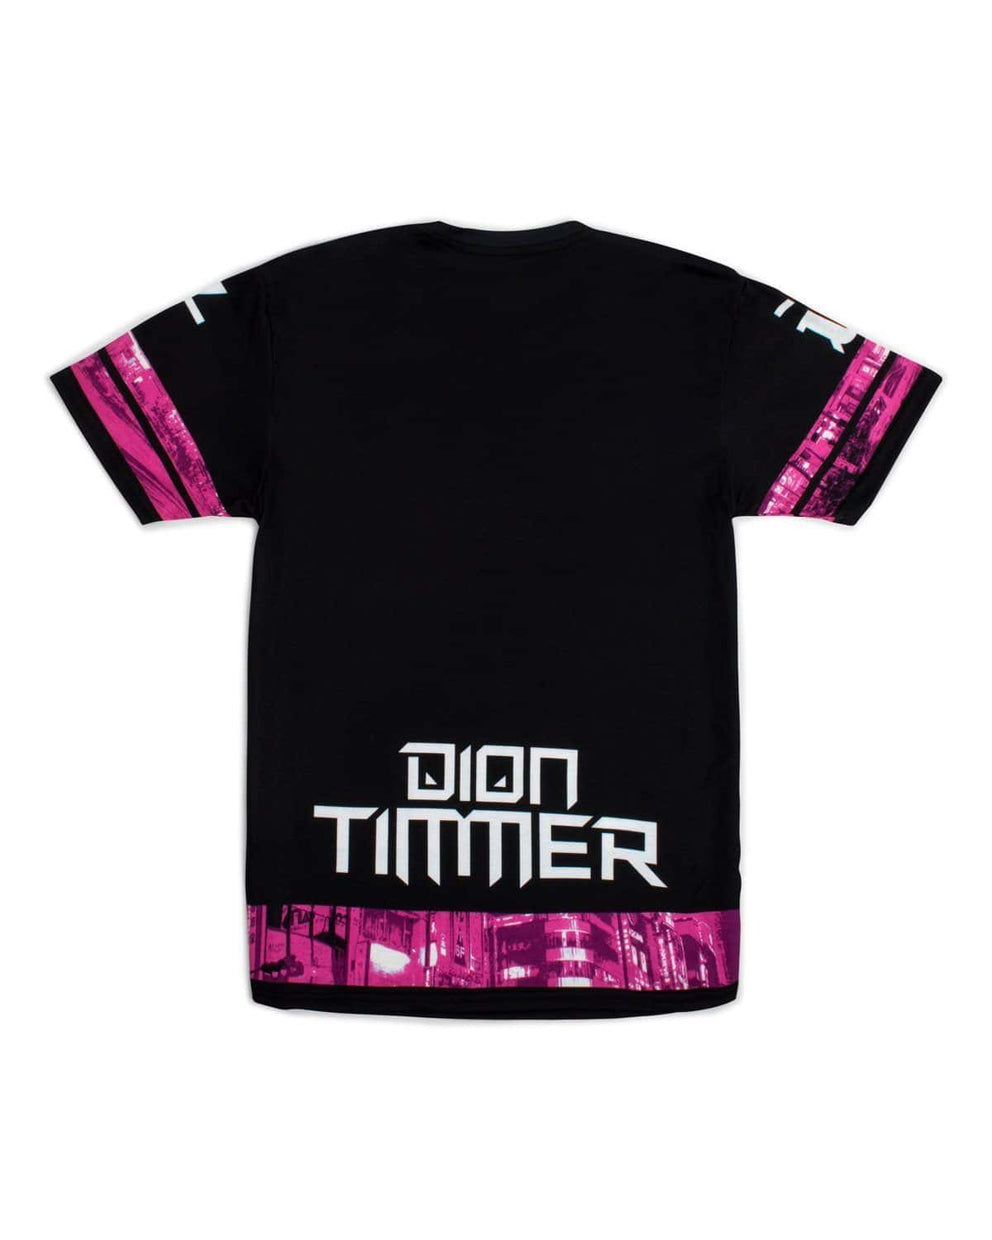 'Downtown Dion' Unisex T-Shirt - Pink